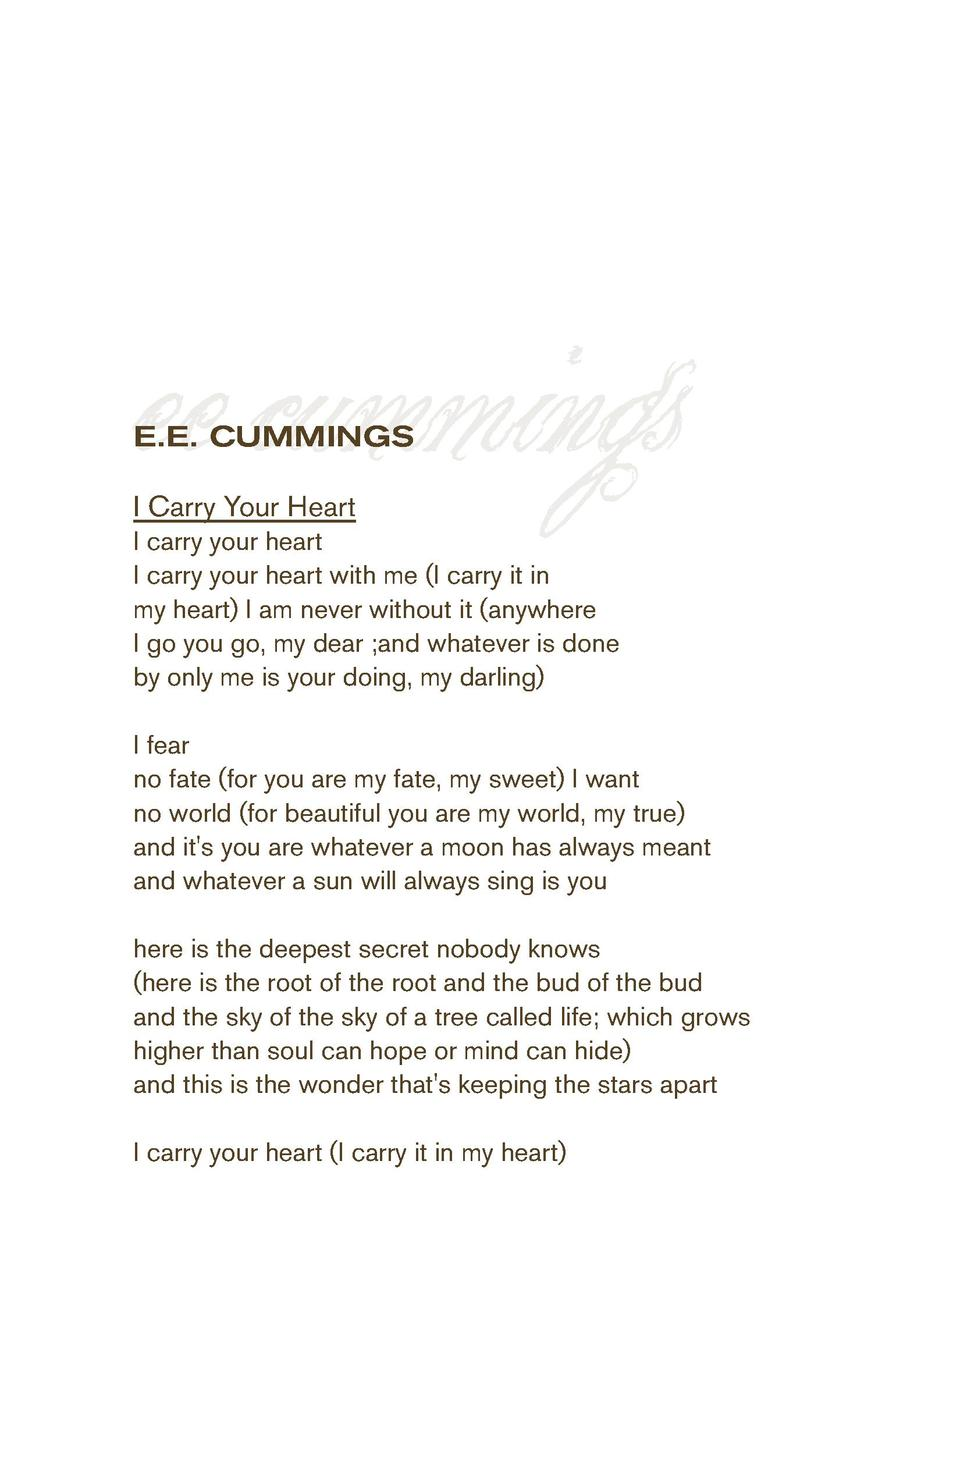 ee cummings E.E. CUMMINGS I Carry Your Heart  I carry your heart I carry your heart with me  I carry it in my heart  I am ...